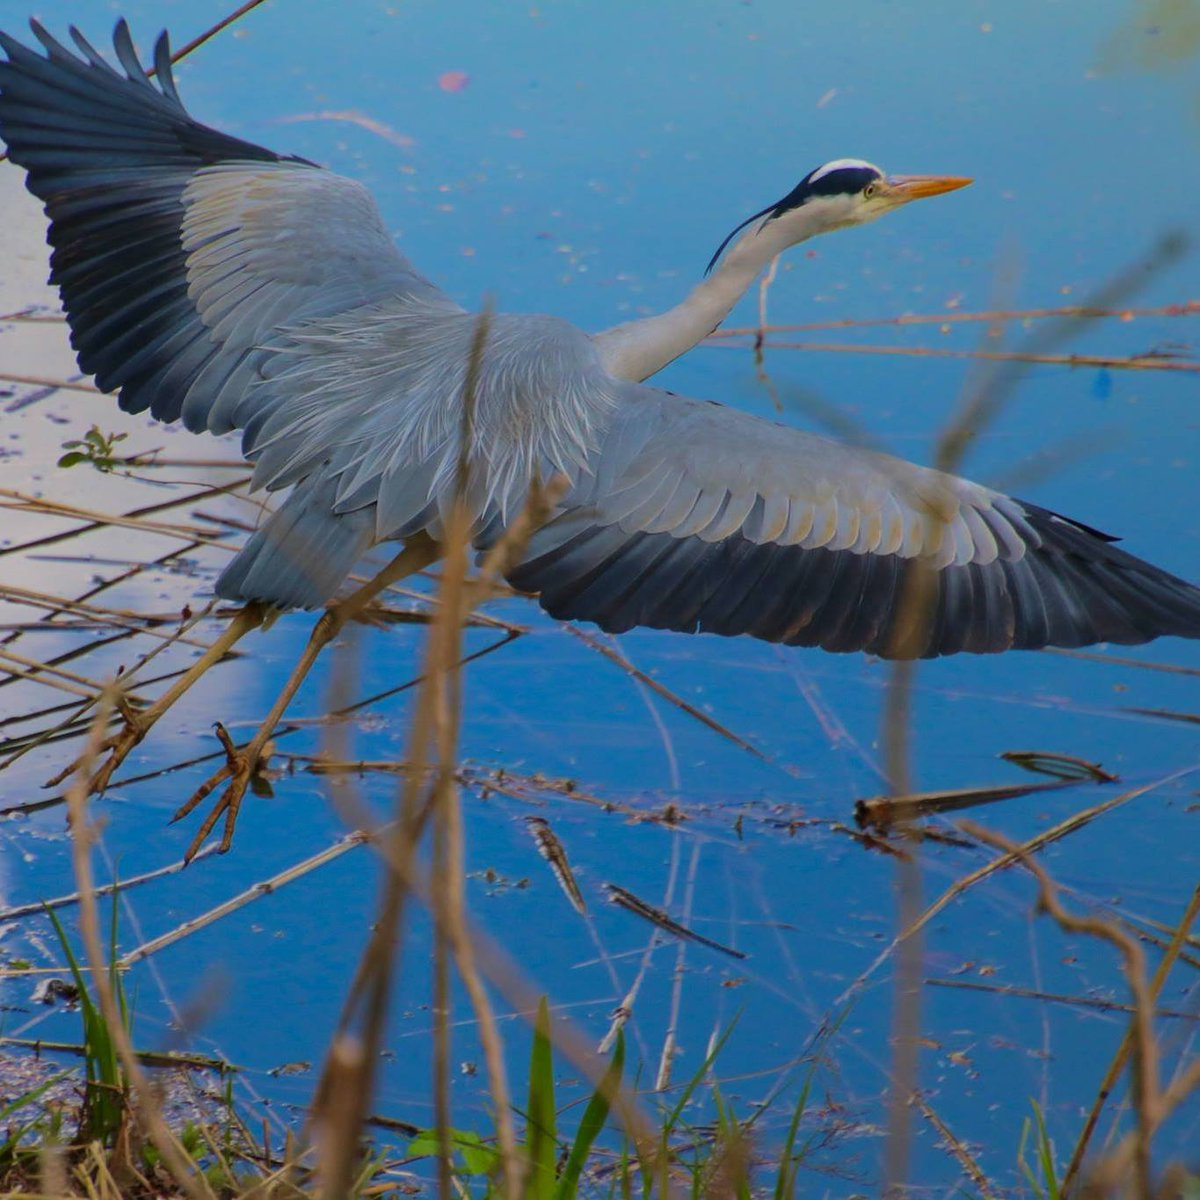 Into the Blue #Heron #LaHulpe pic.twitter.com/t0P6udyNTw